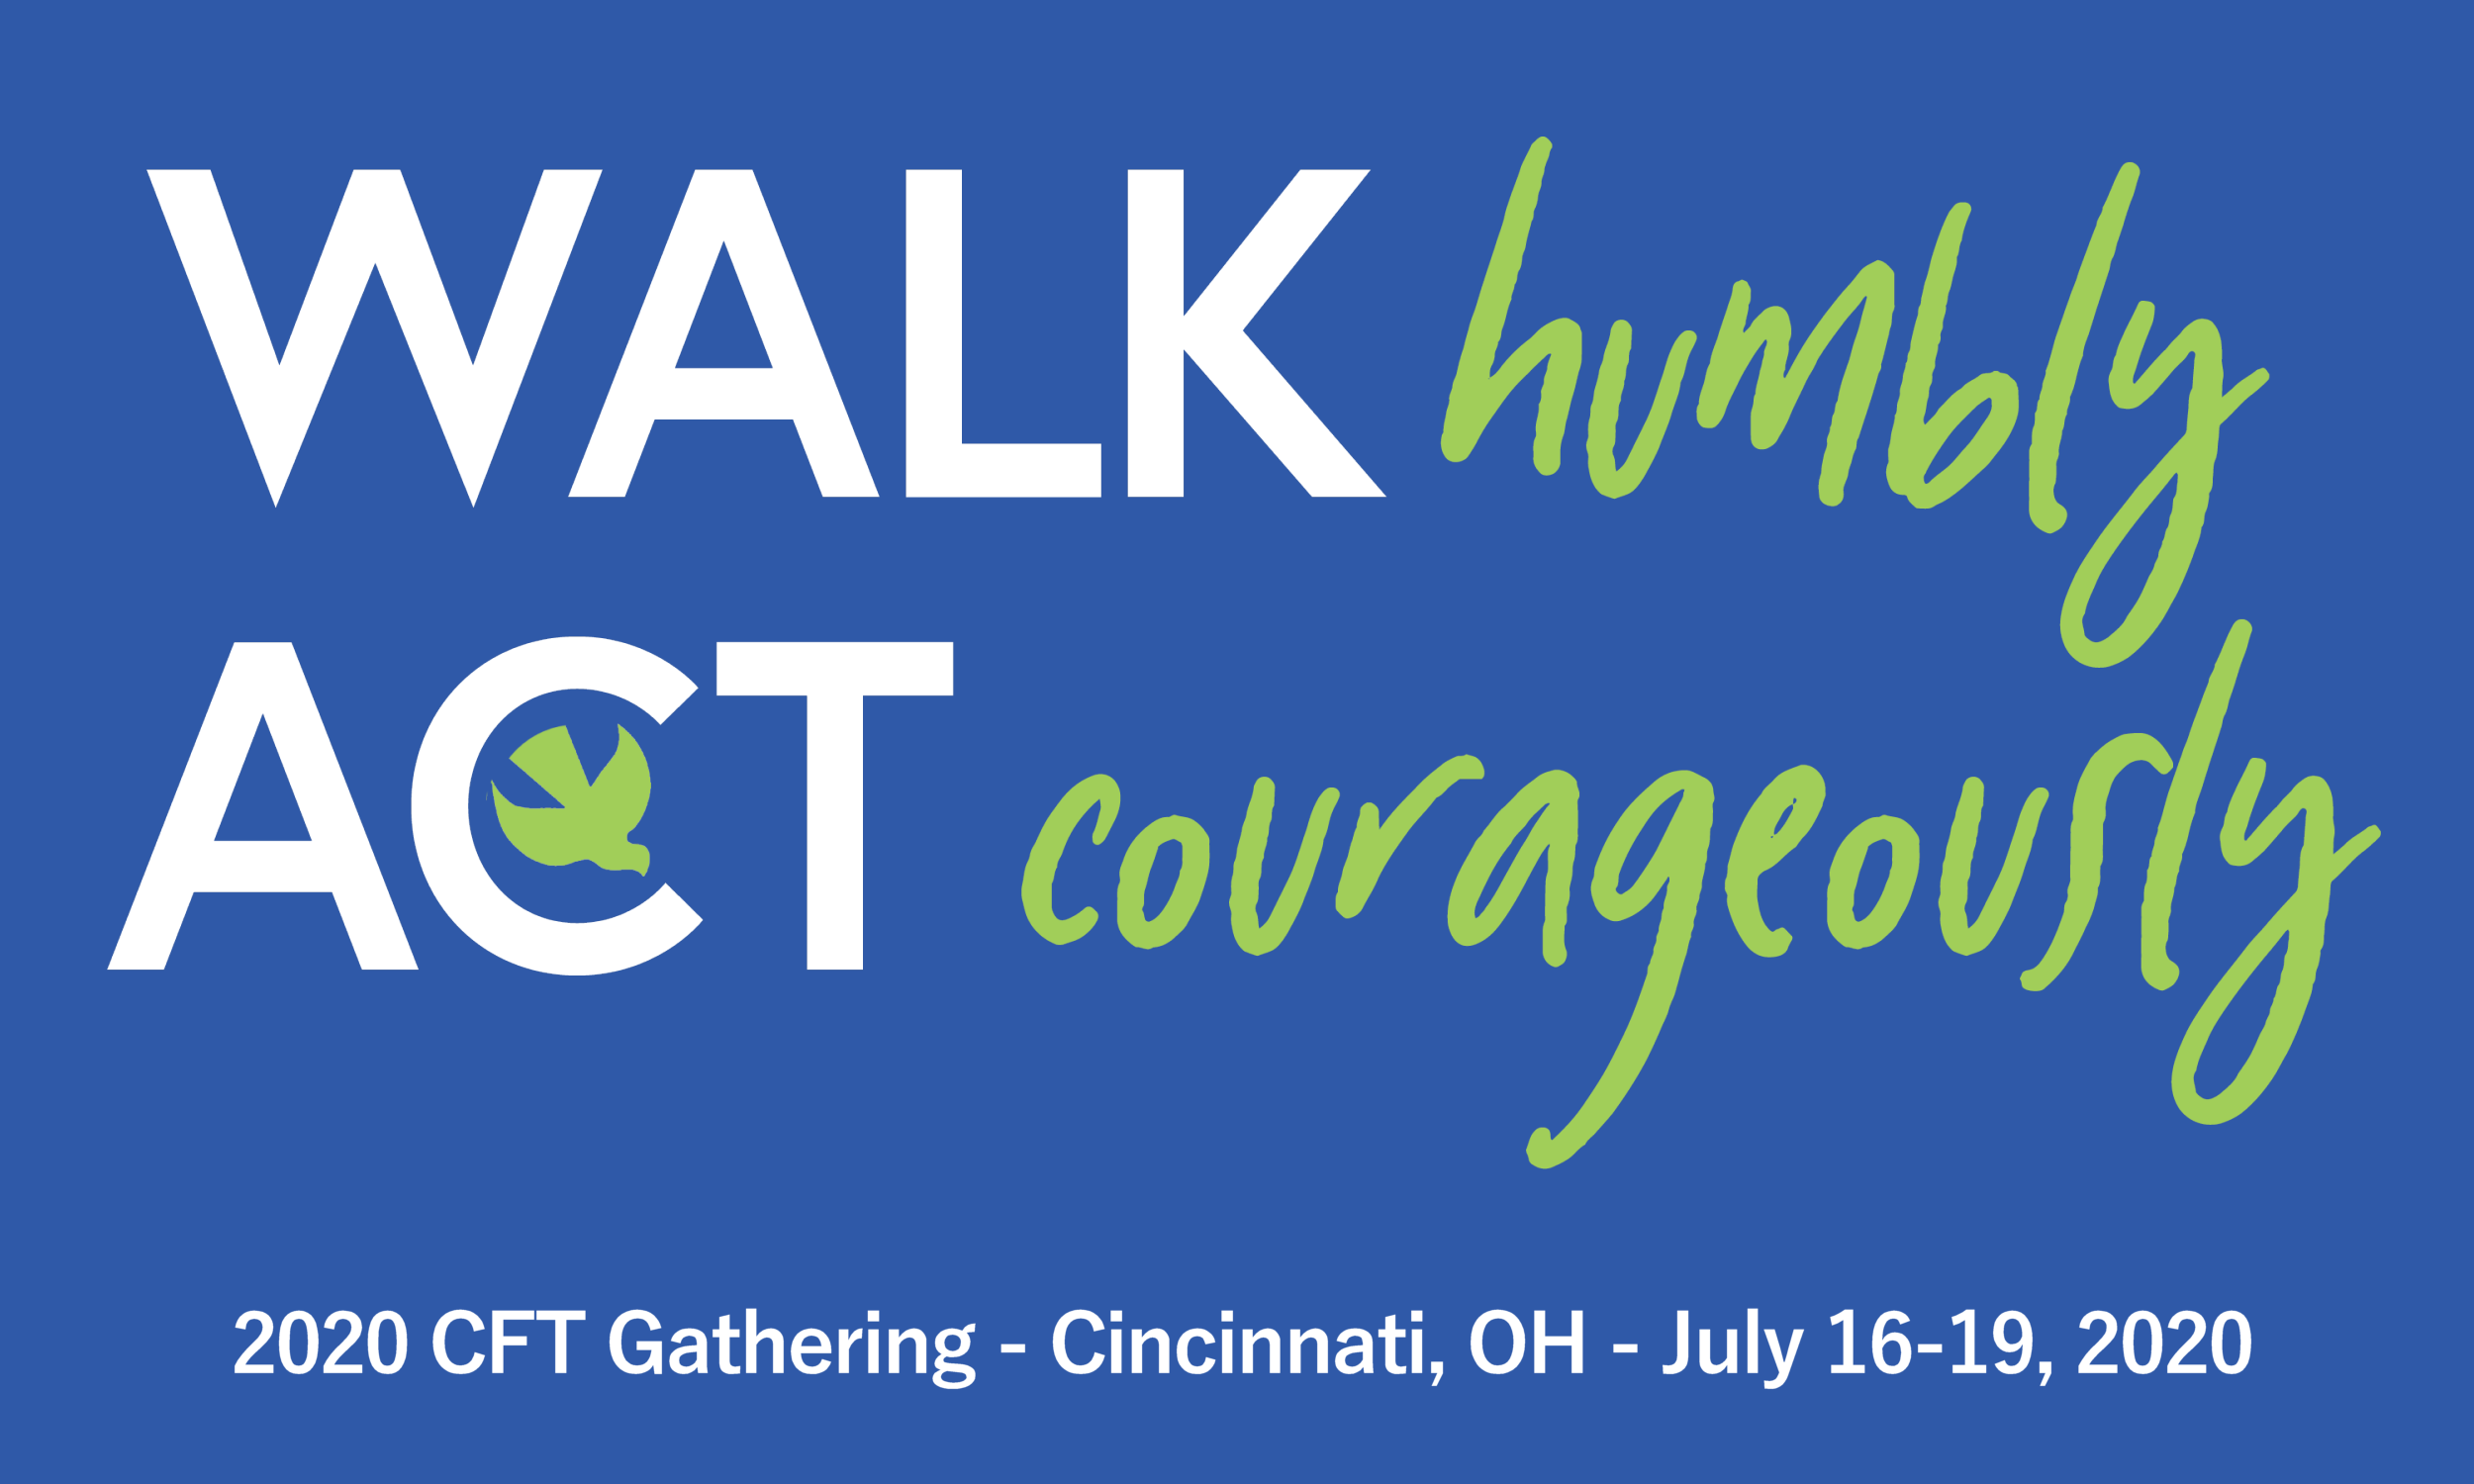 Walk Humbly, Act Courageously